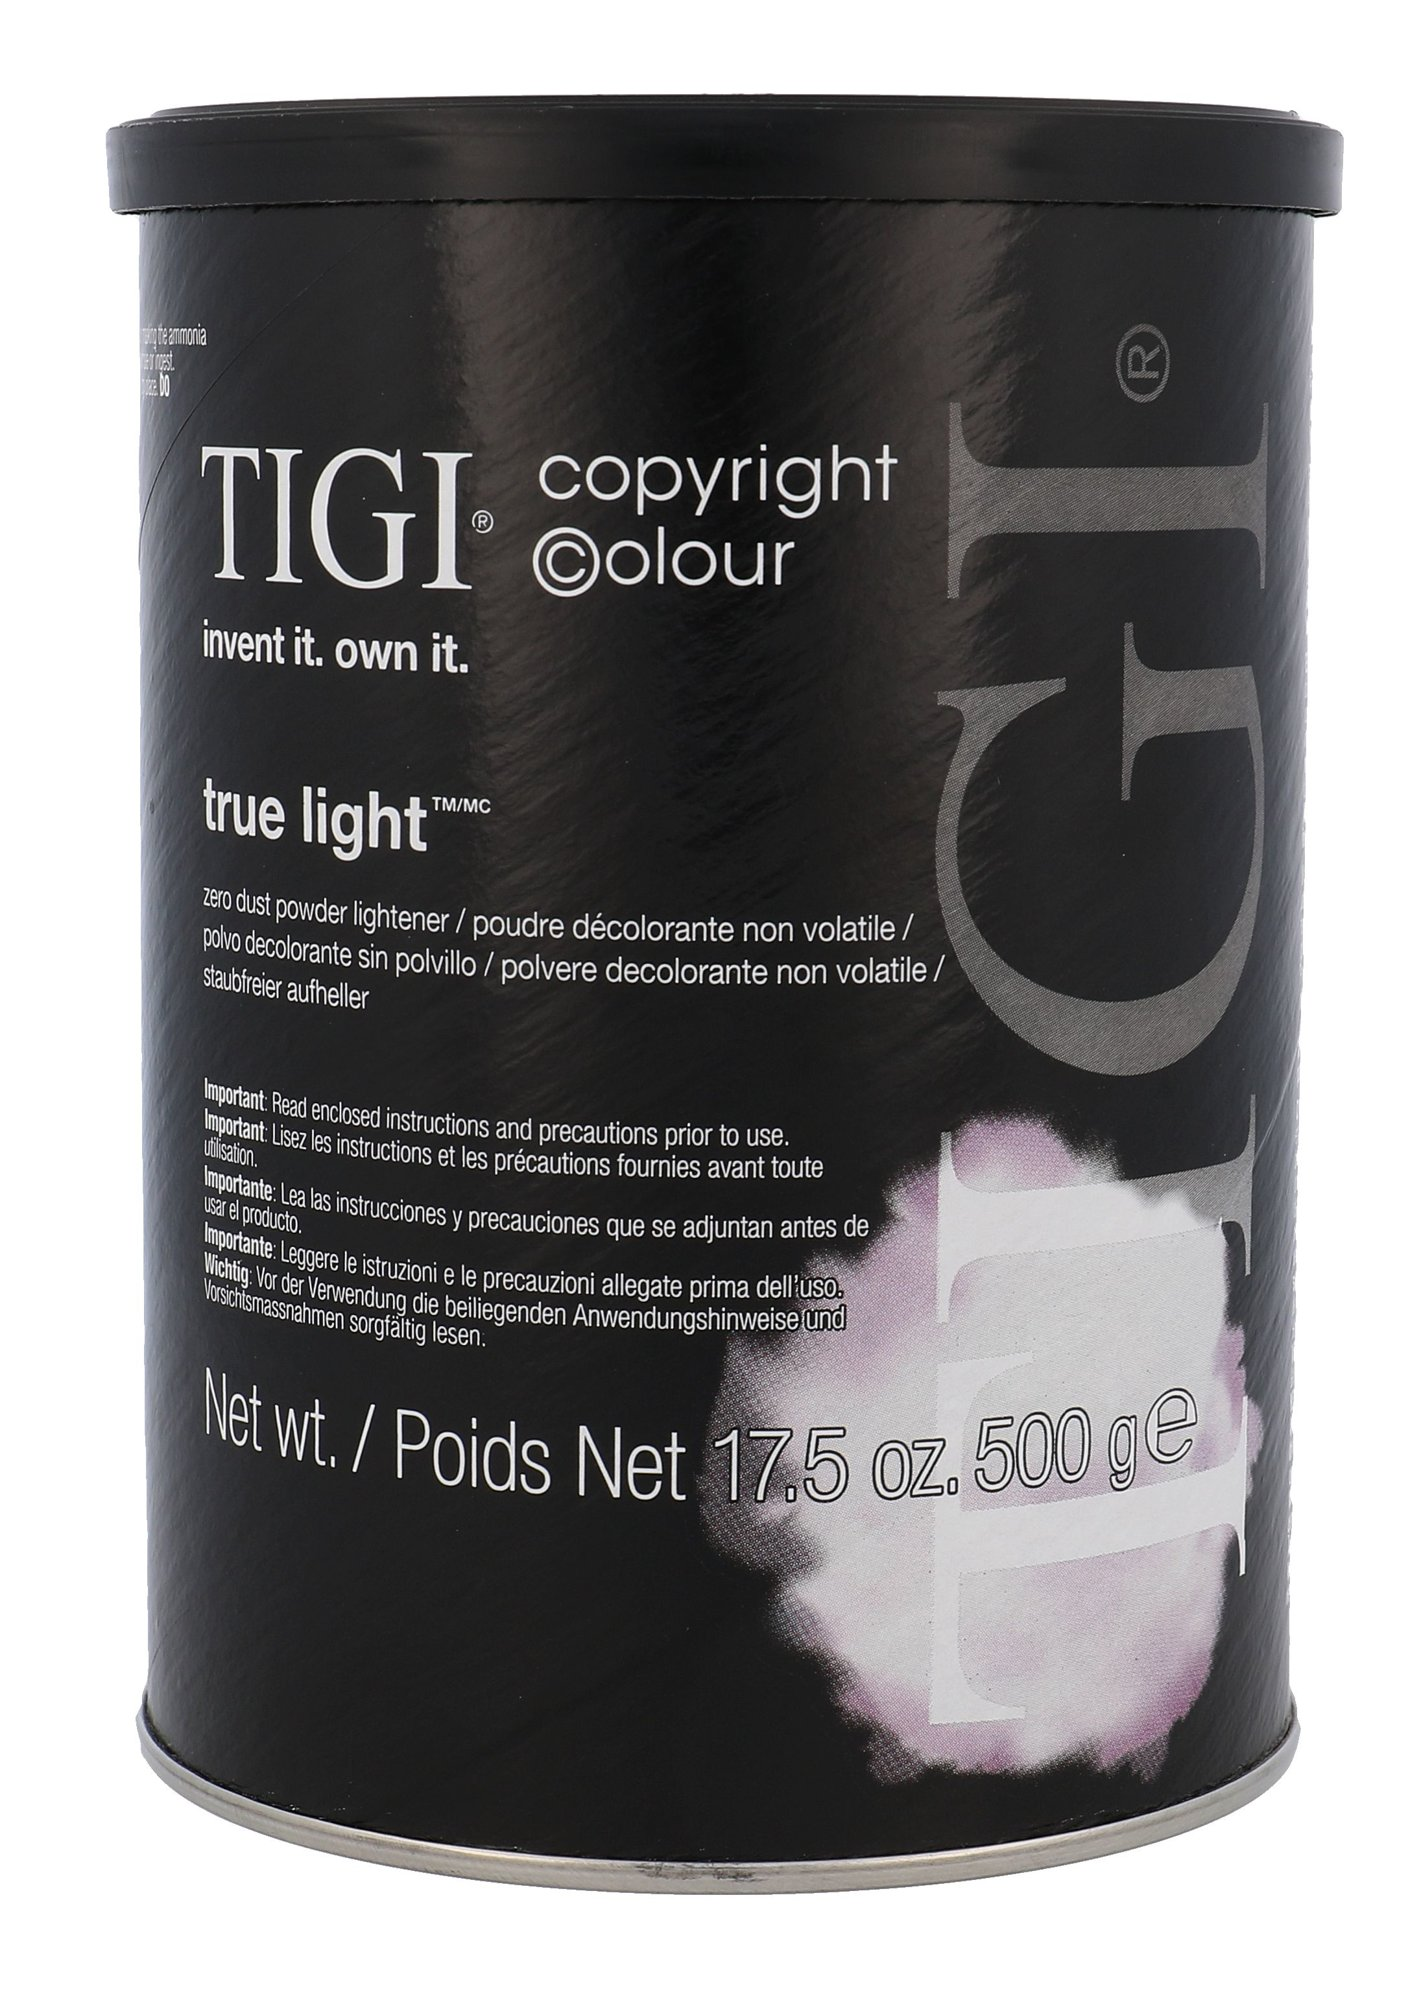 Tigi Copyright Colour Cosmetic 500ml